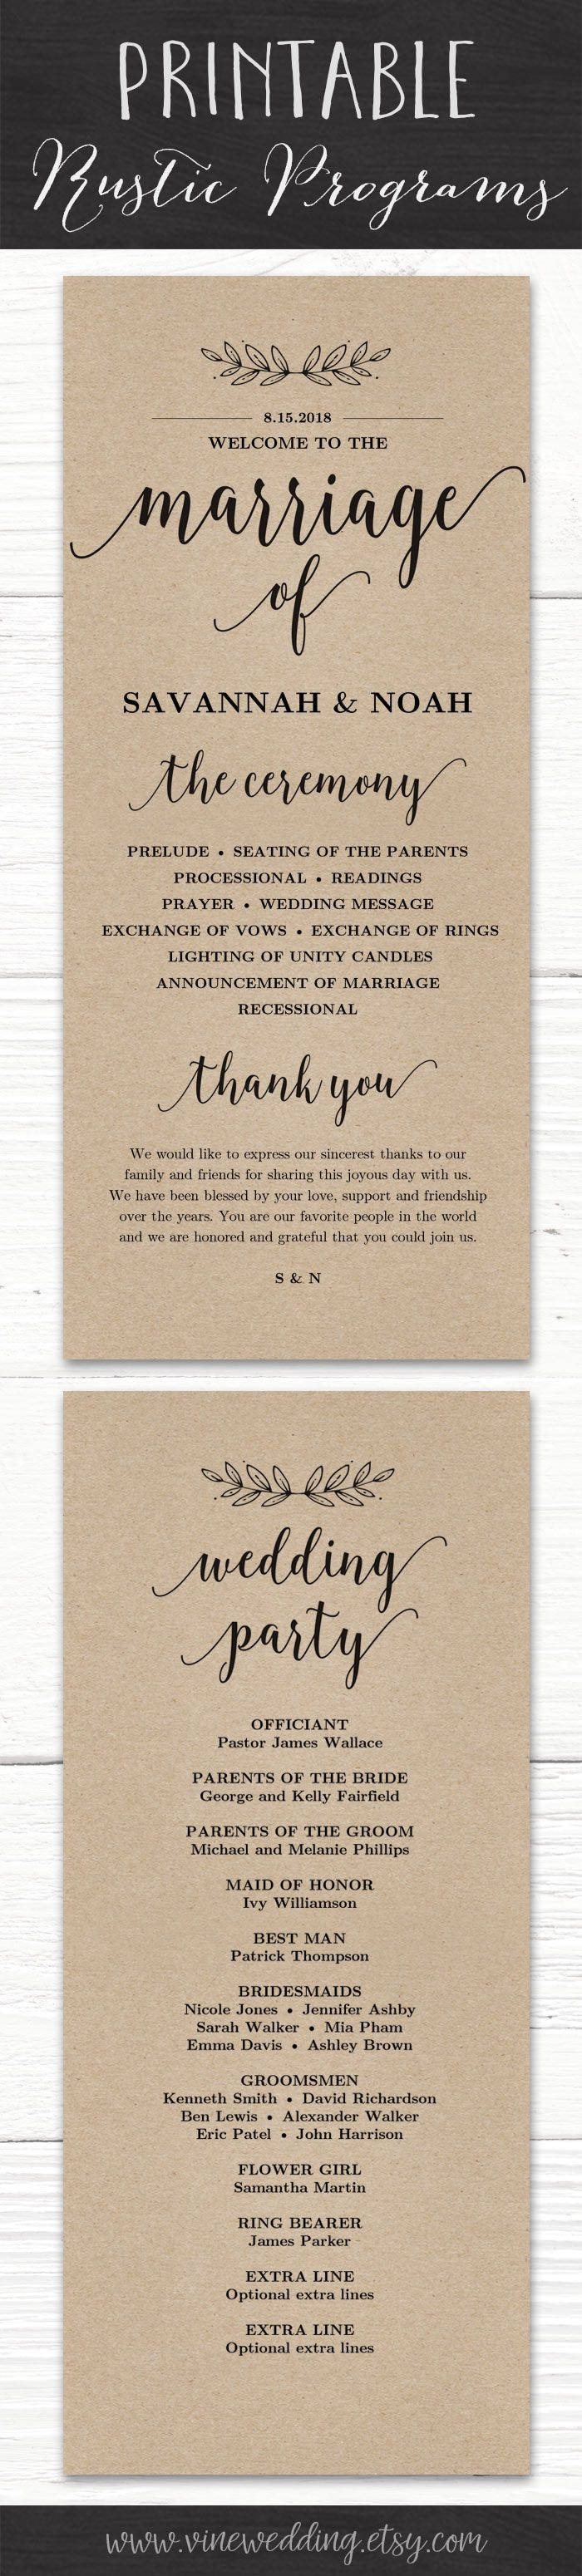 diy wedding invites rustic%0A Printable Rustic Wedding Program  weddingprogram  rusticwedding  printable   diywedding